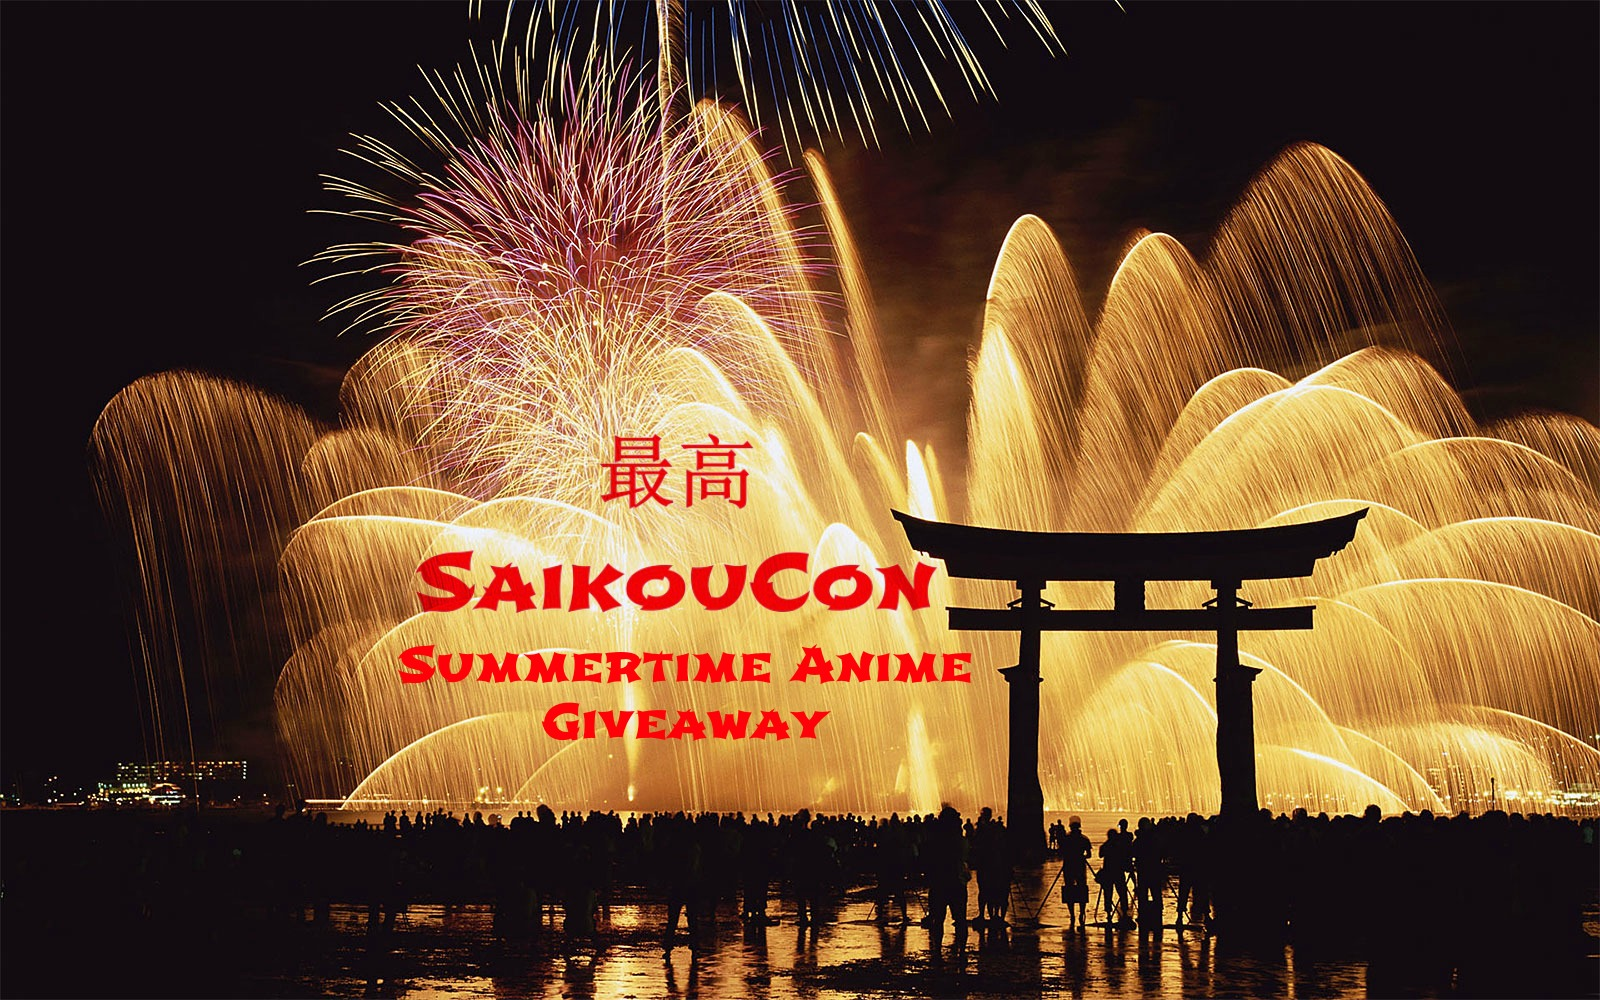 SaikouCon Summertime Anime Giveaway